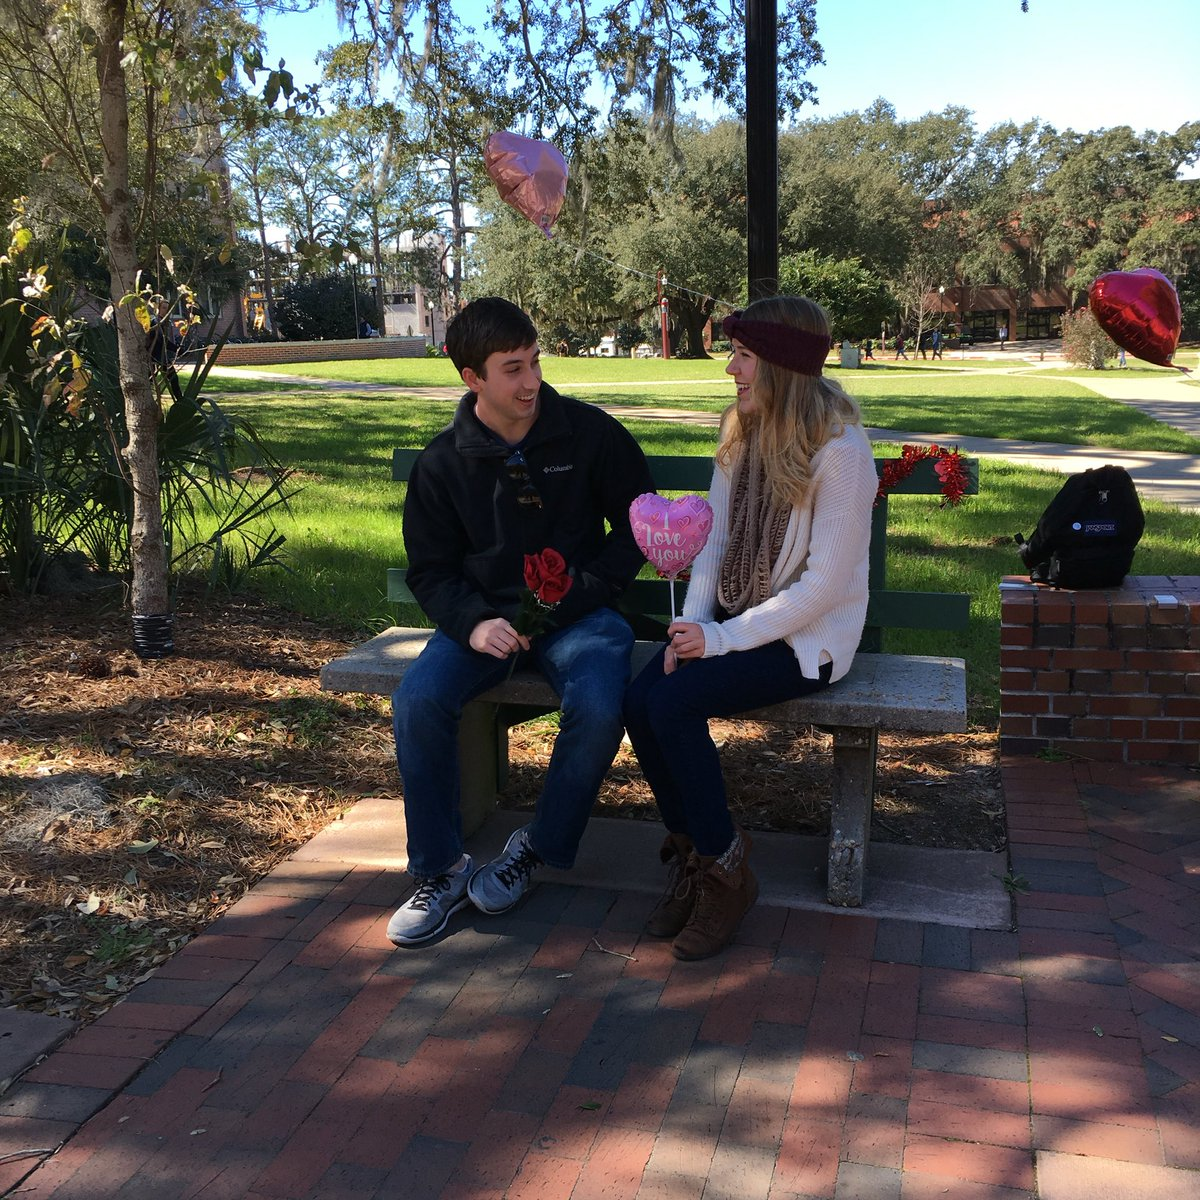 florida state university on twitter come to the kissing bench and